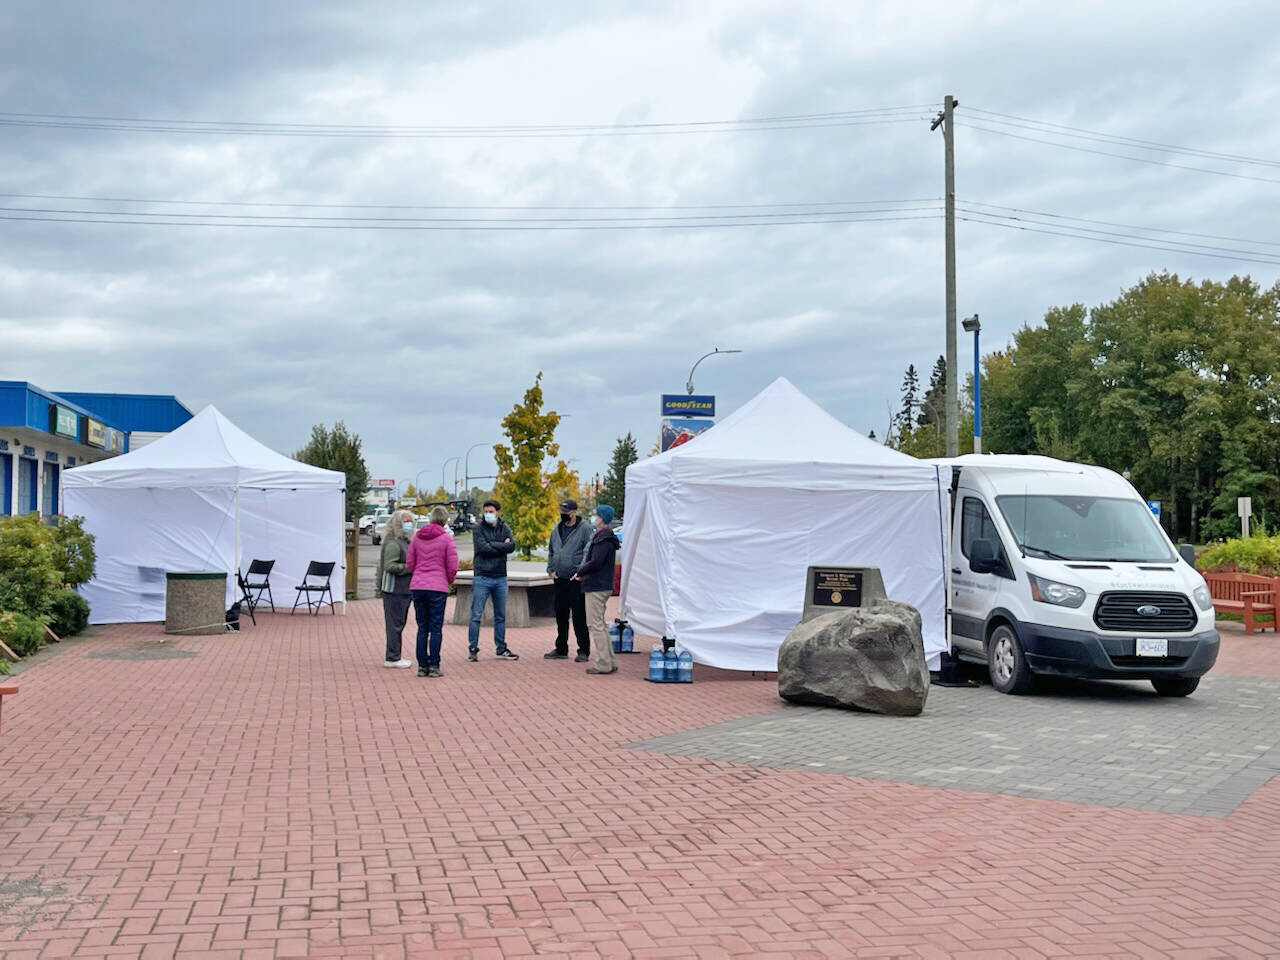 A pop up COVID-19 vaccine clinic at Rotary Park in Smithers is open for walk-ins for first and second doses of vaccine until 6 p.m. Friday and and at the Smithers arena Saturday, Sept. 25, 10 a.m. to 4 p.m. (Deb Meissner/Interior News)